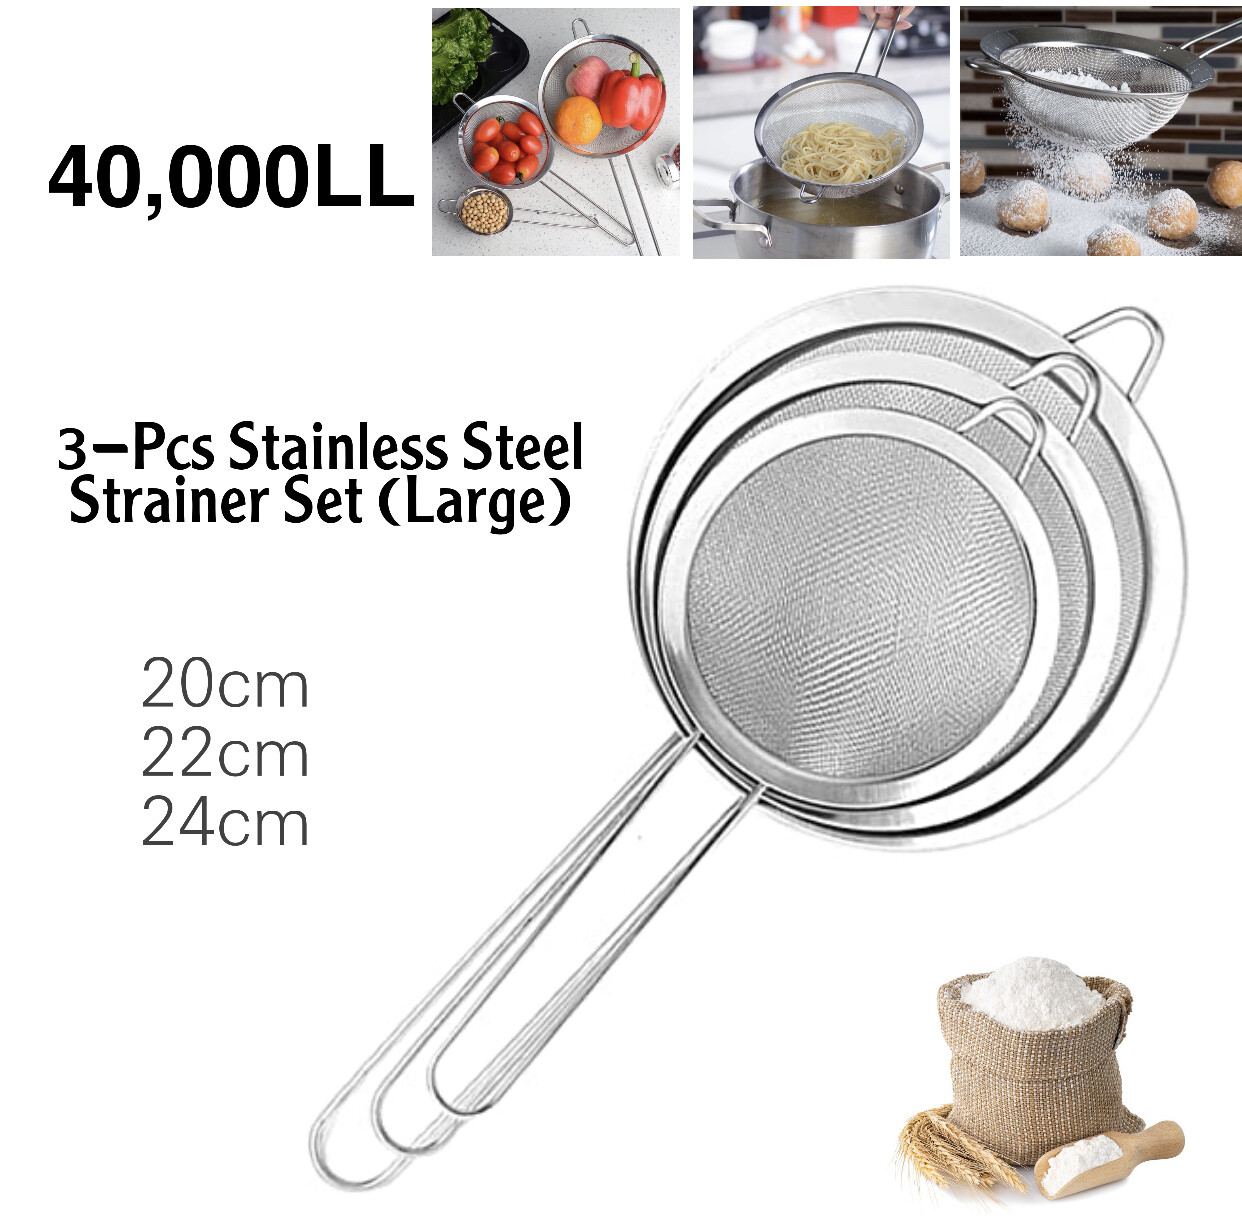 3-Pcs Strainer Set (Large)